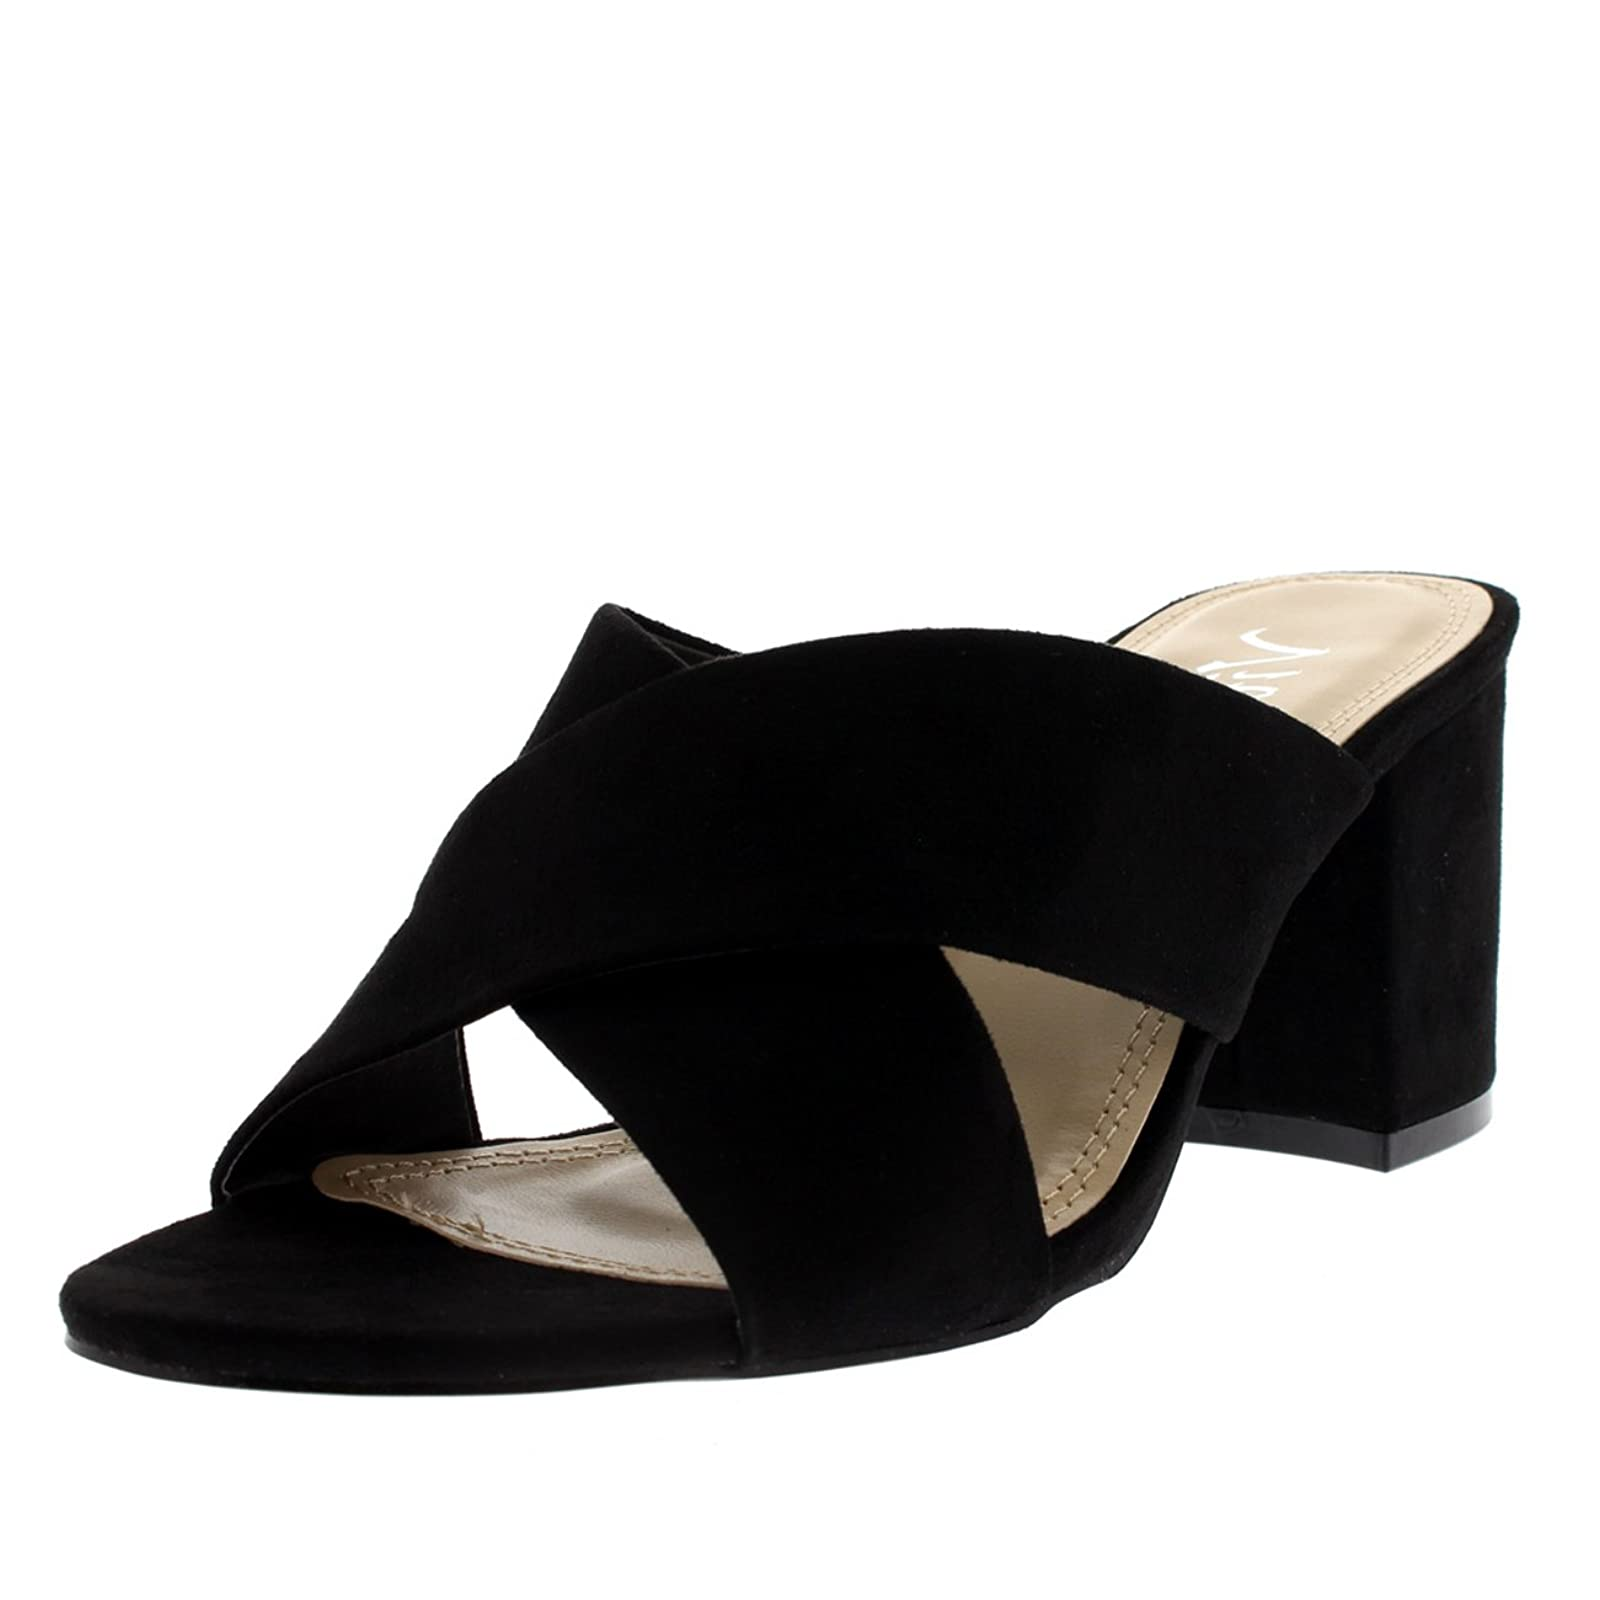 Viva Womens Open Toe Cut Out Mules - 1